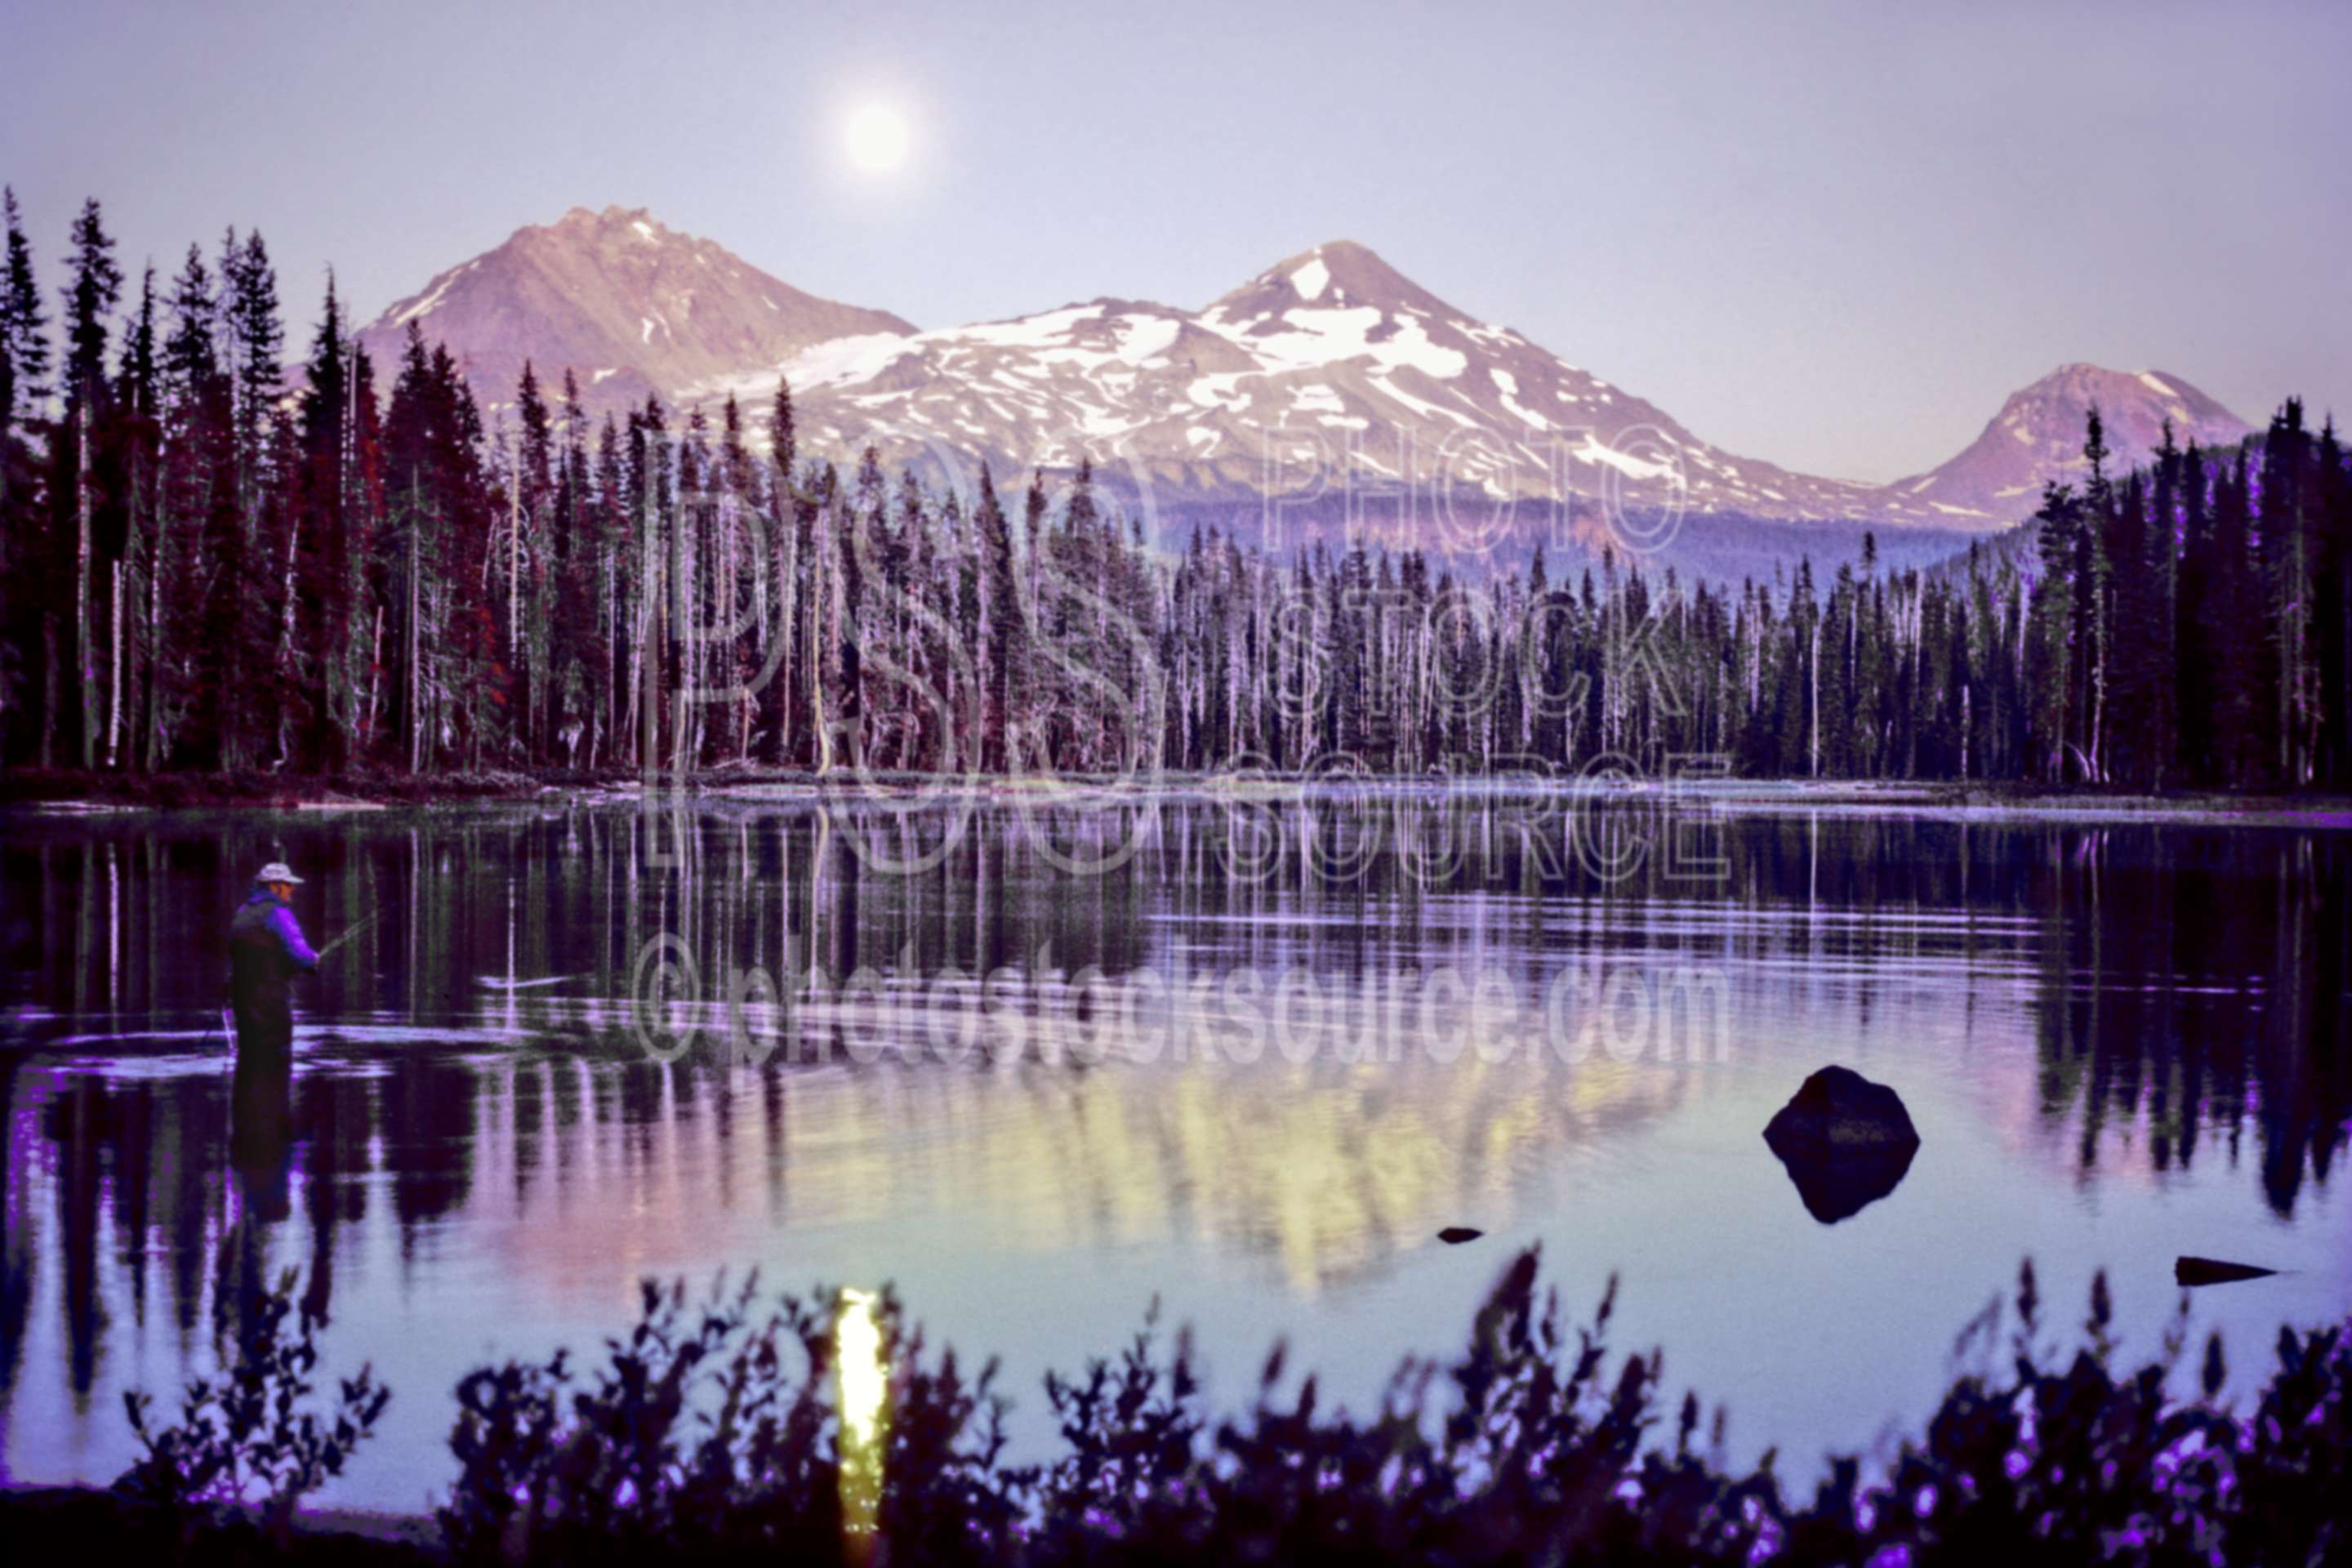 Three Sisters Moonrise,scott lake,moon,moonrise,middle sister,north sister,south sister,lake,night,fisherman,usas,lakes rivers,mountains